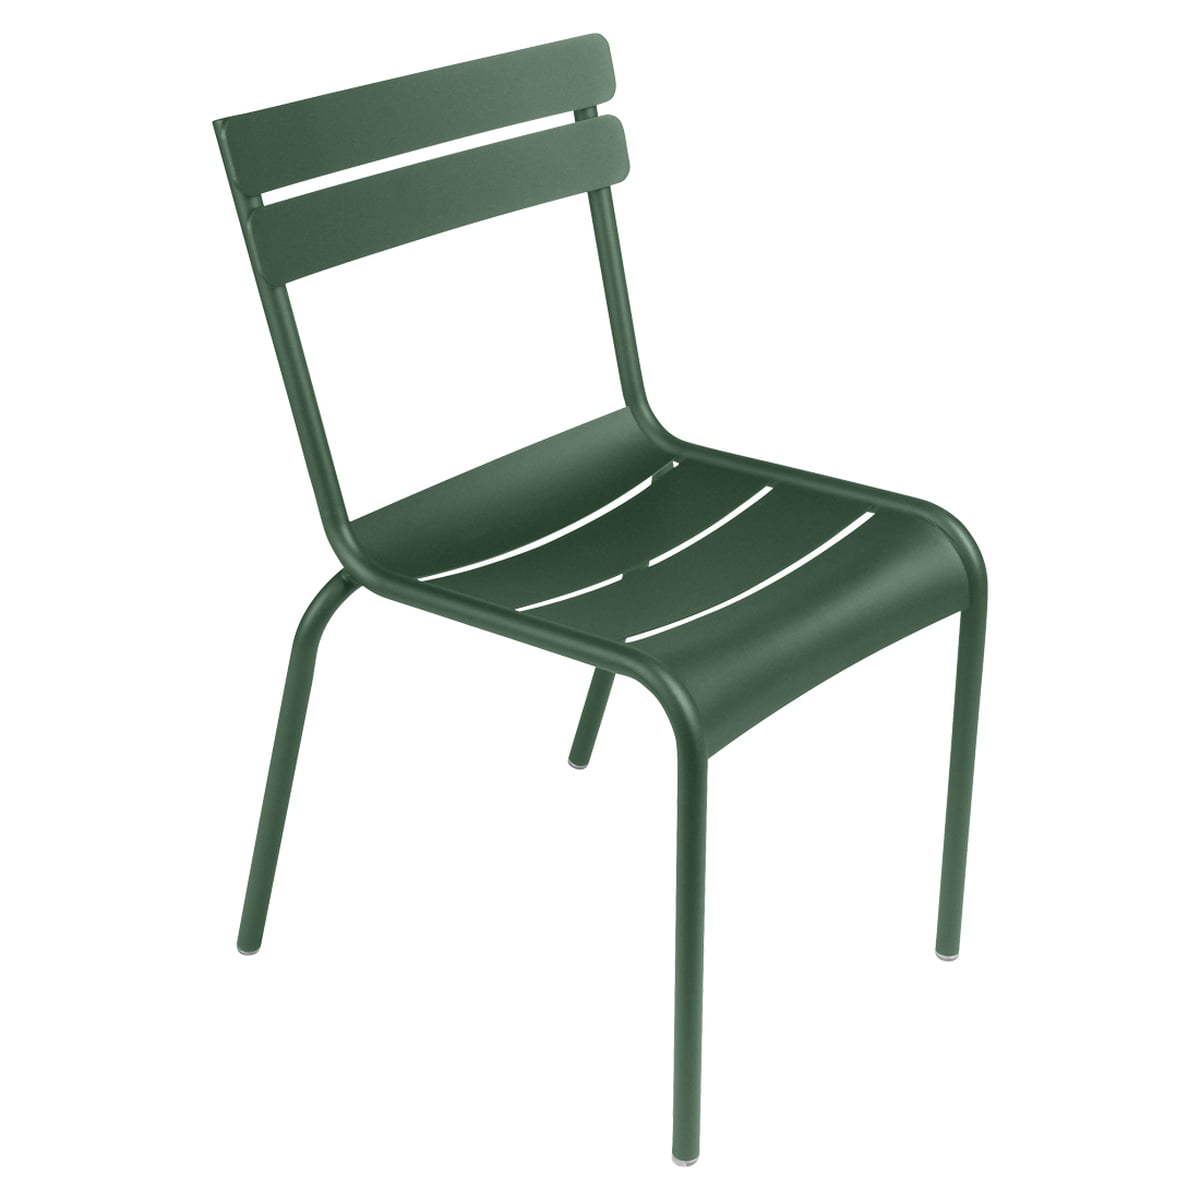 Luxembourg garden chair fermob shop for Table et chaise de jardin en aluminium